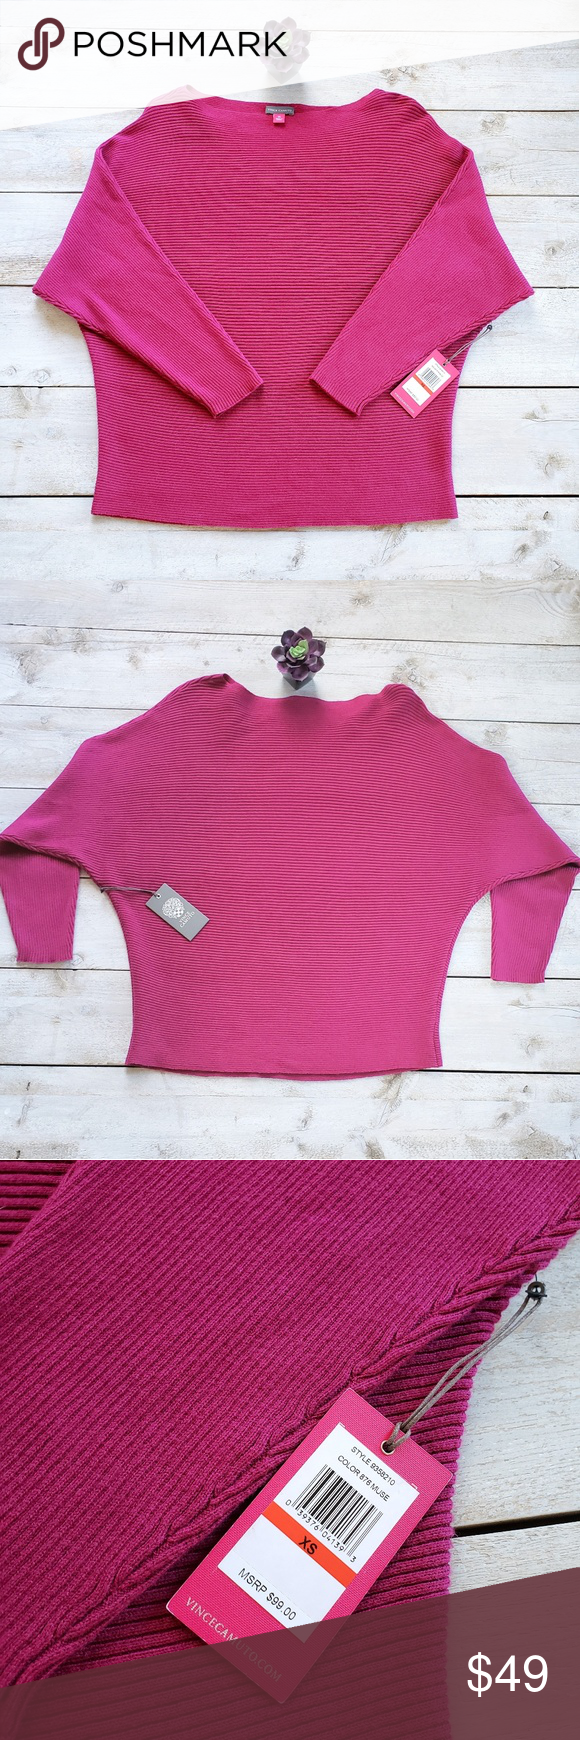 0978edd8859 Vince Camuto Dolman Sleeve Boatneck Sweater NWT color 876muse size xs  ribbed dolman sleeve boat neck